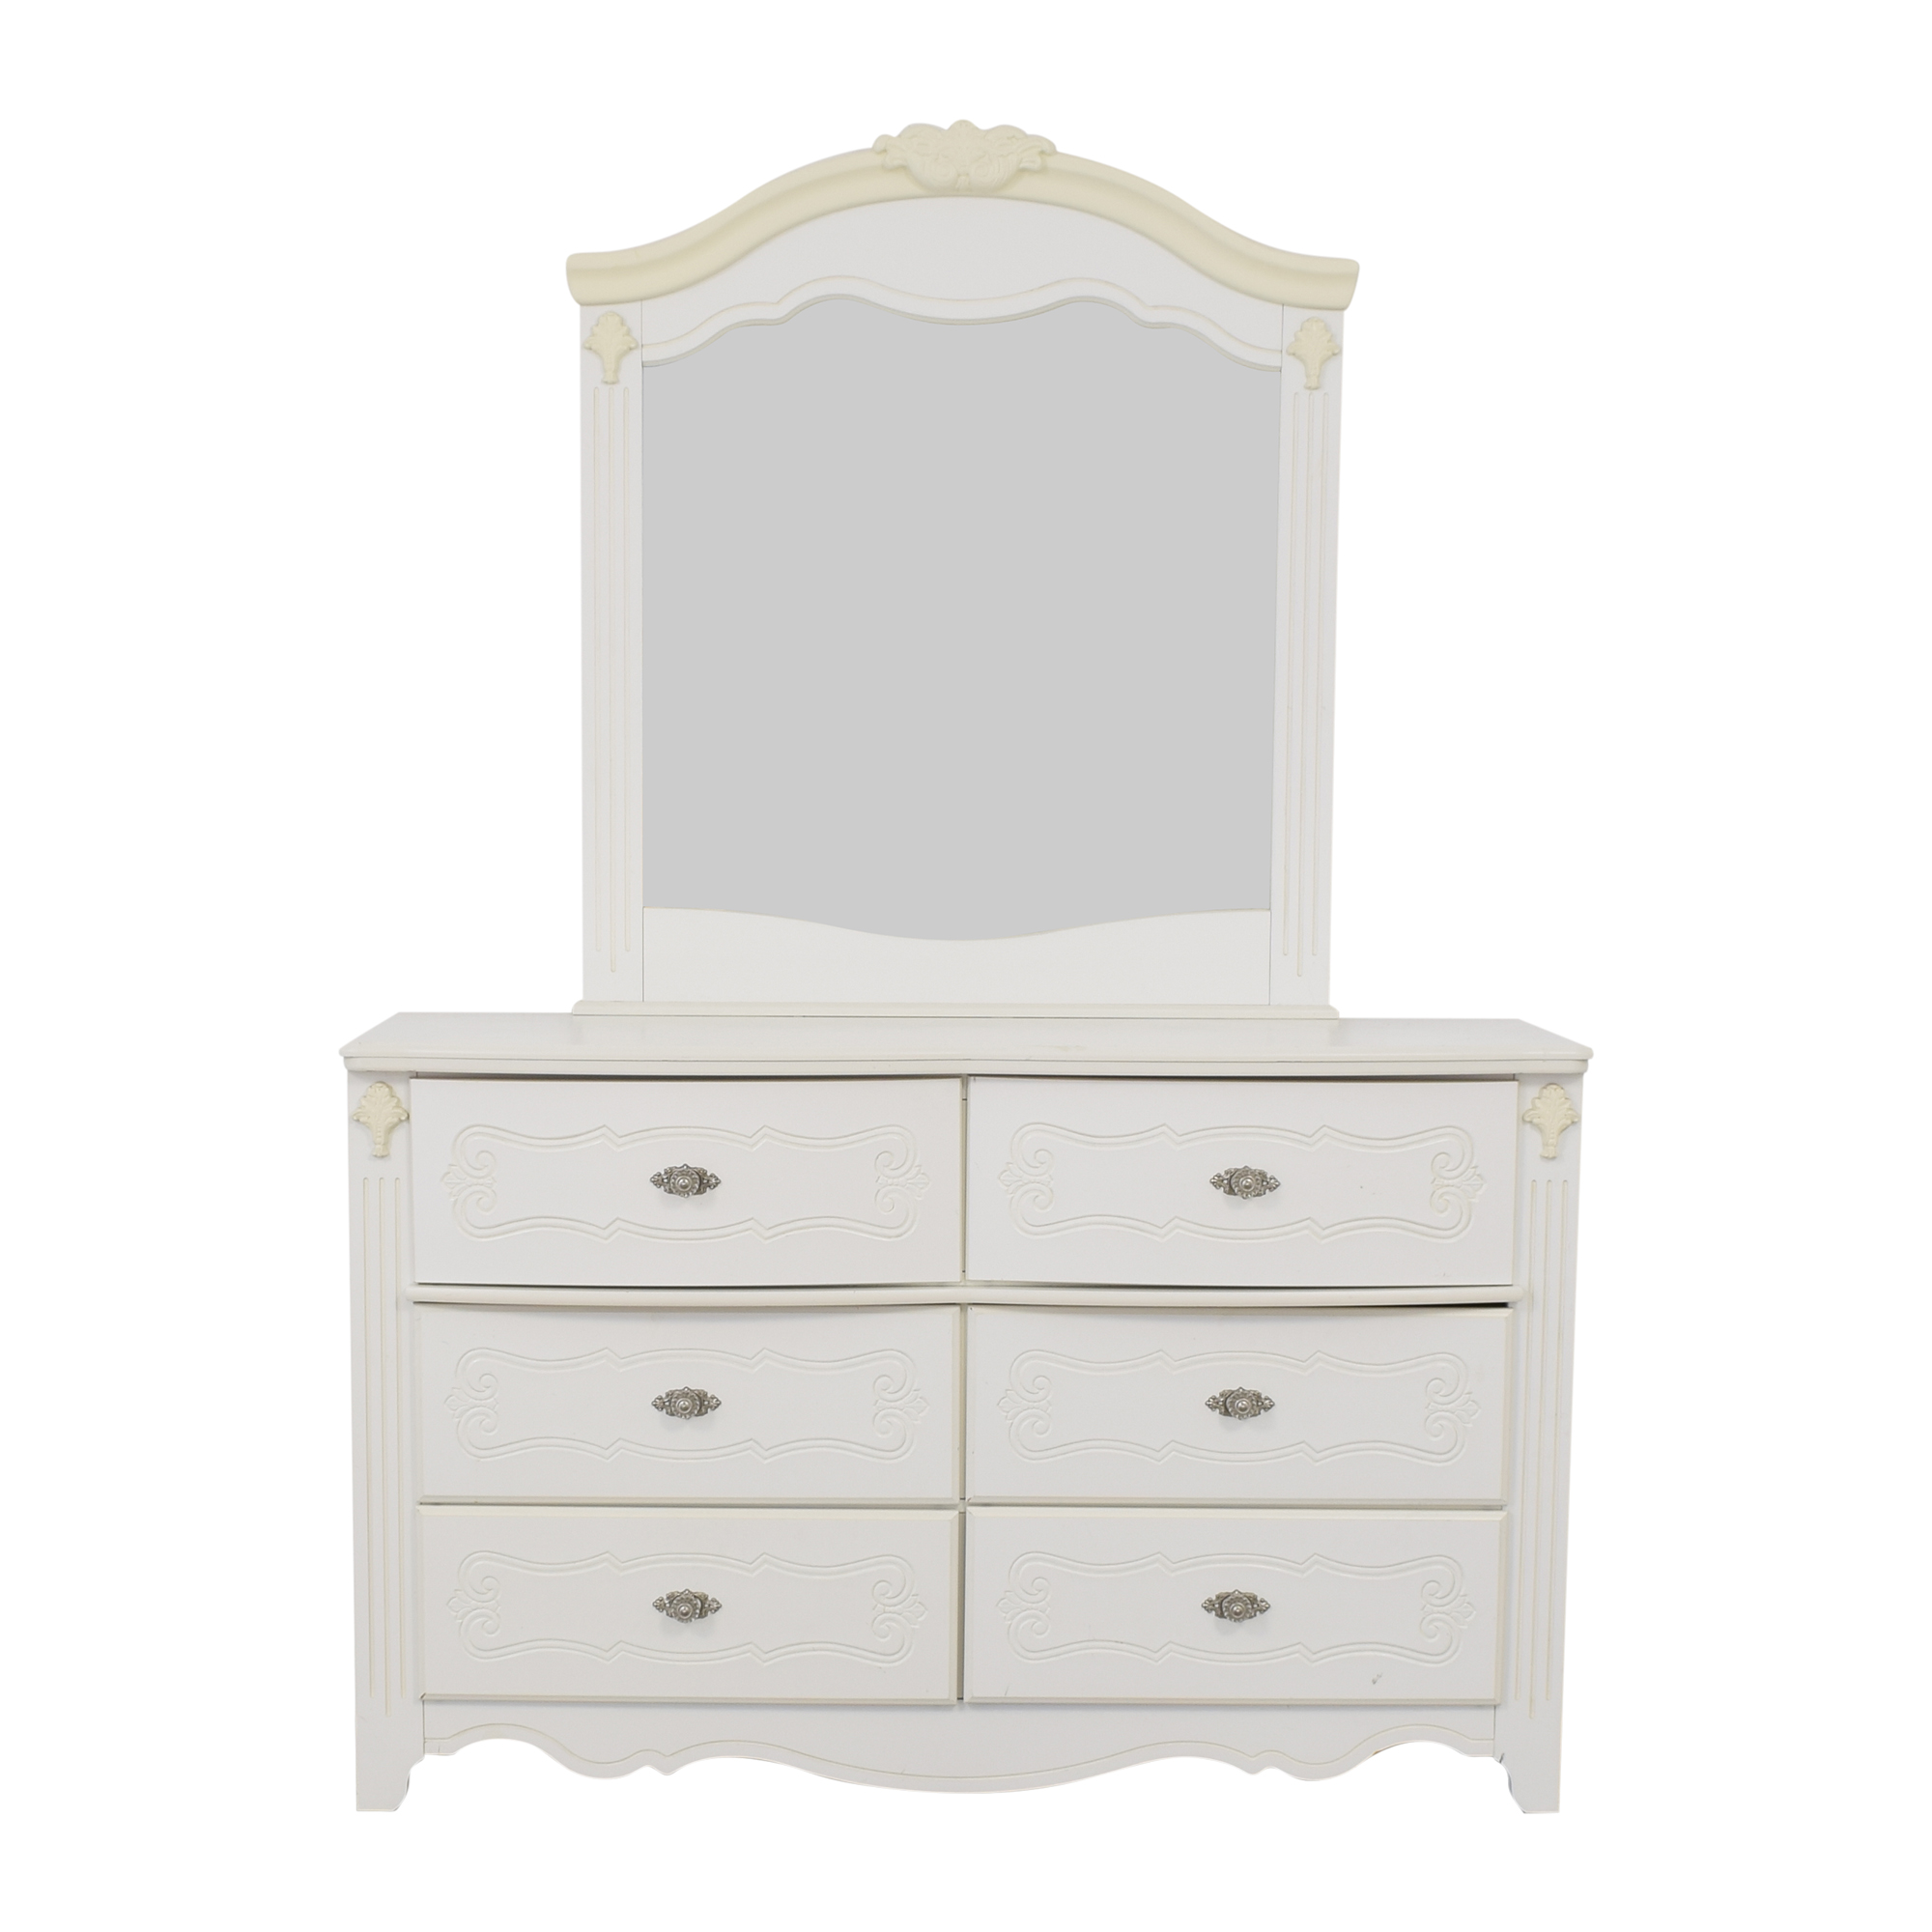 Ashley Furniture Dresser with Mirror sale